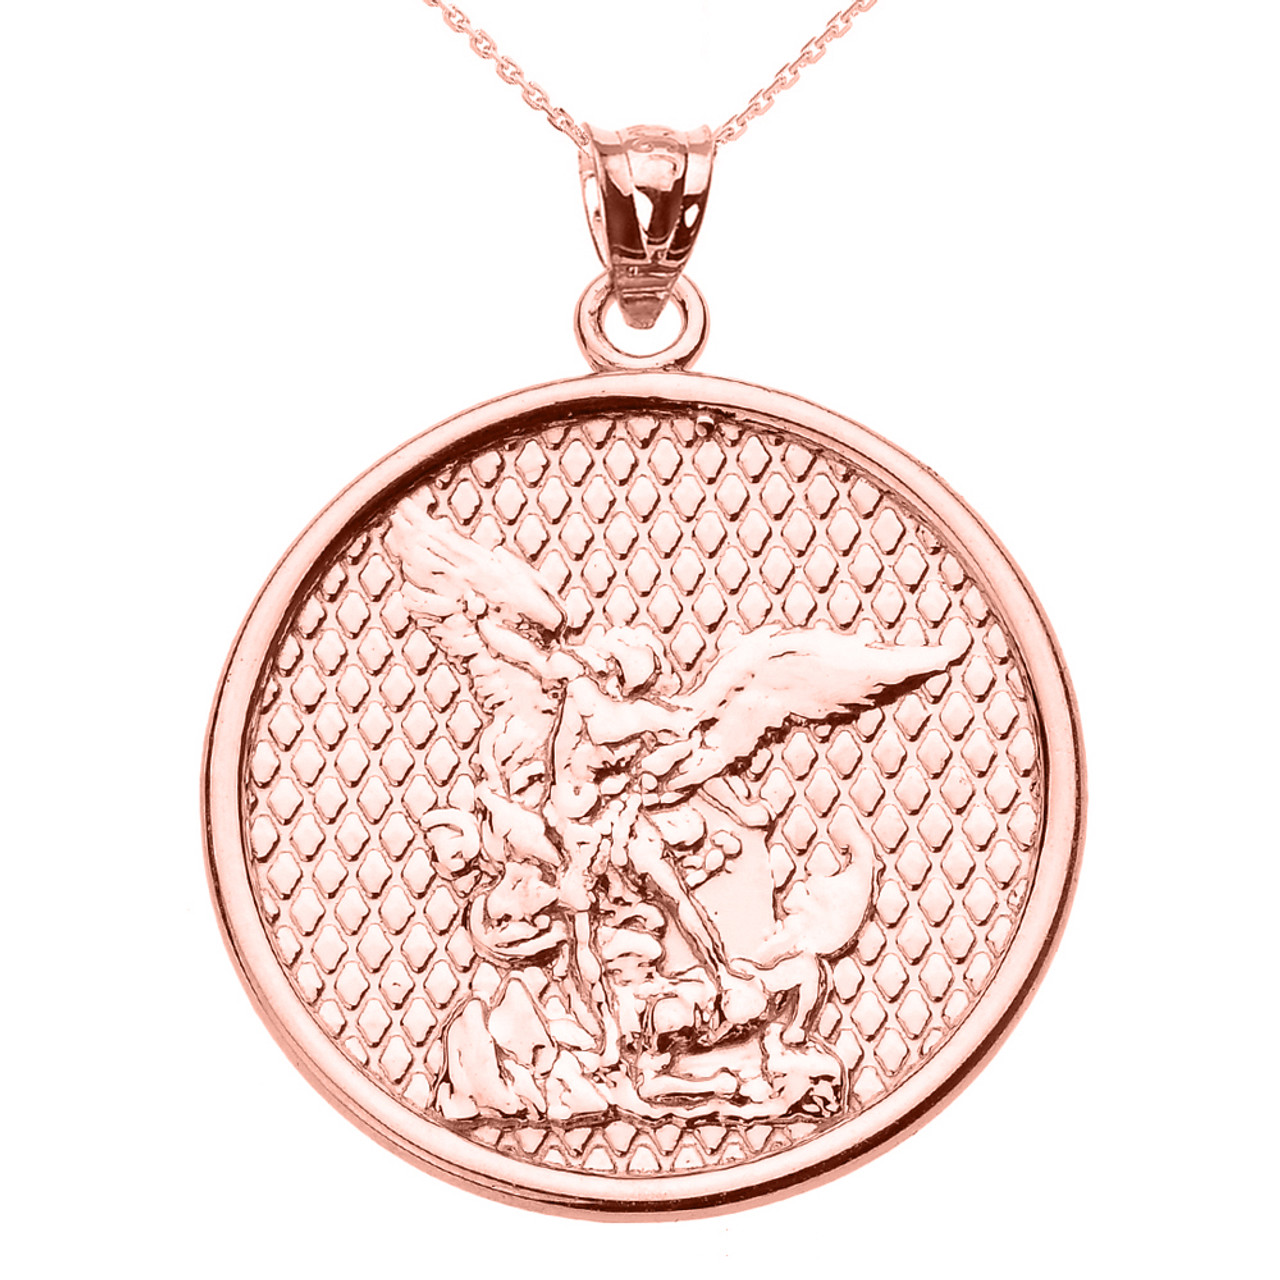 Rose gold saint michael pendant necklace aloadofball Images